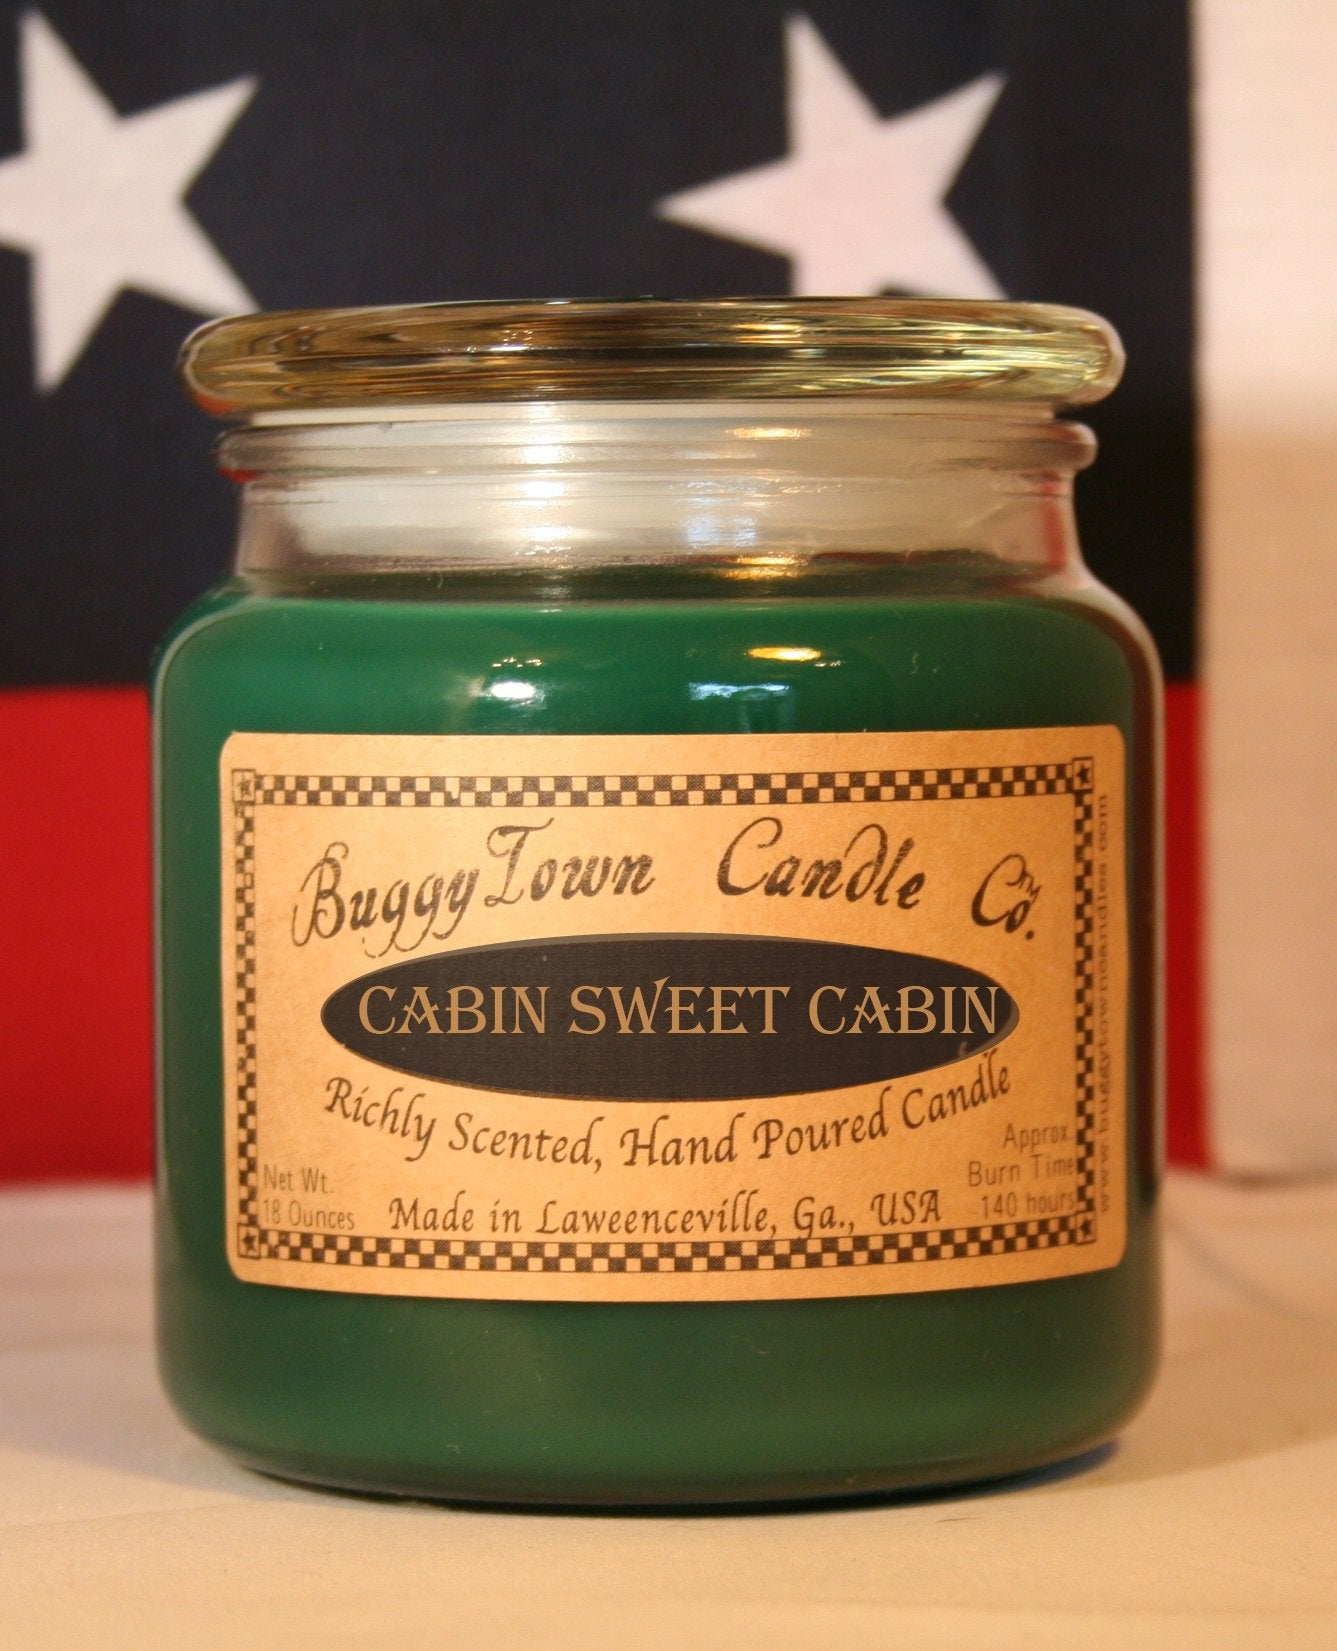 Cabin Sweet Cabin Candles